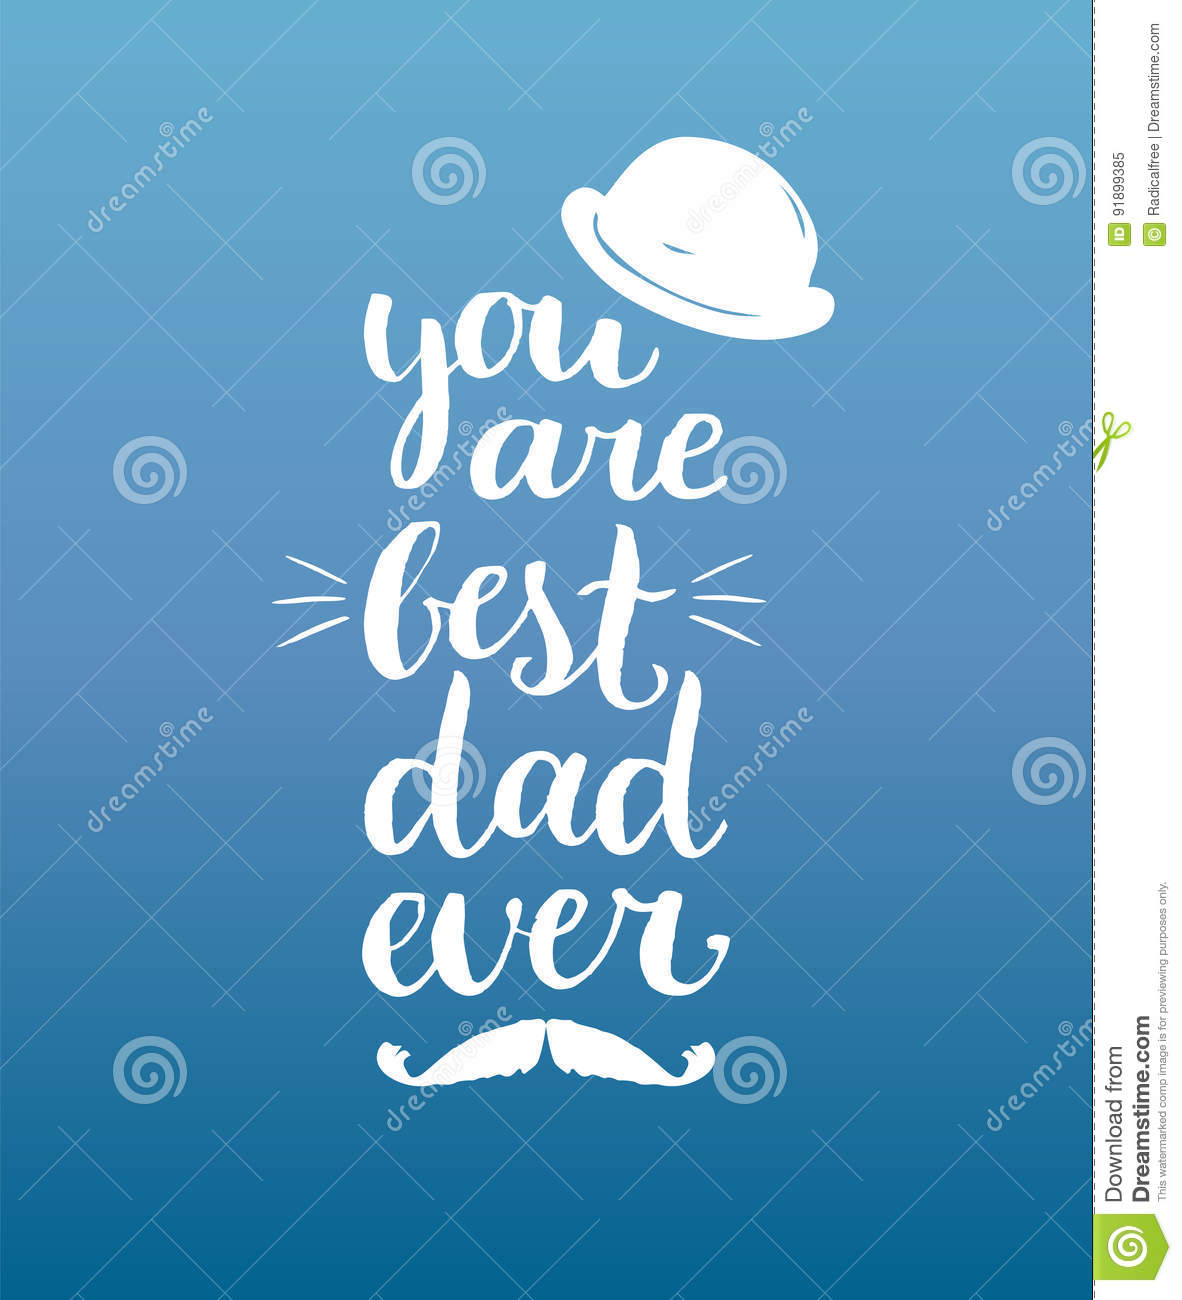 You Are Best Dad Ever Vector Background Calligraphy Happy Fathers